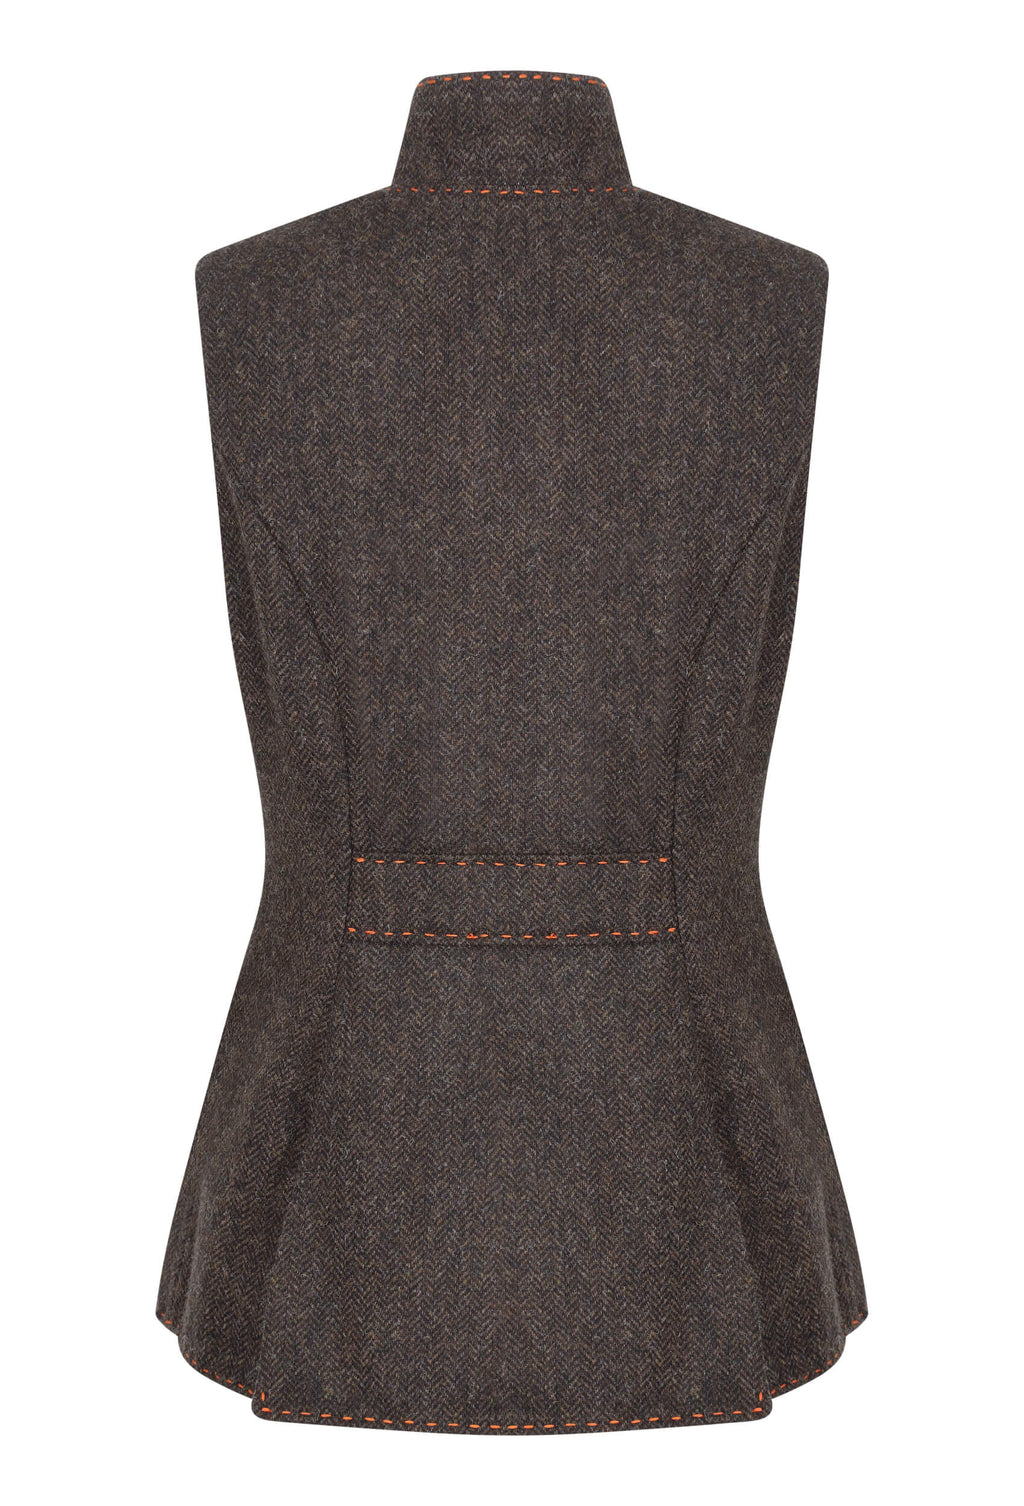 chocolate-brown-herringbone-tweed-fitted-womens-waistcoat